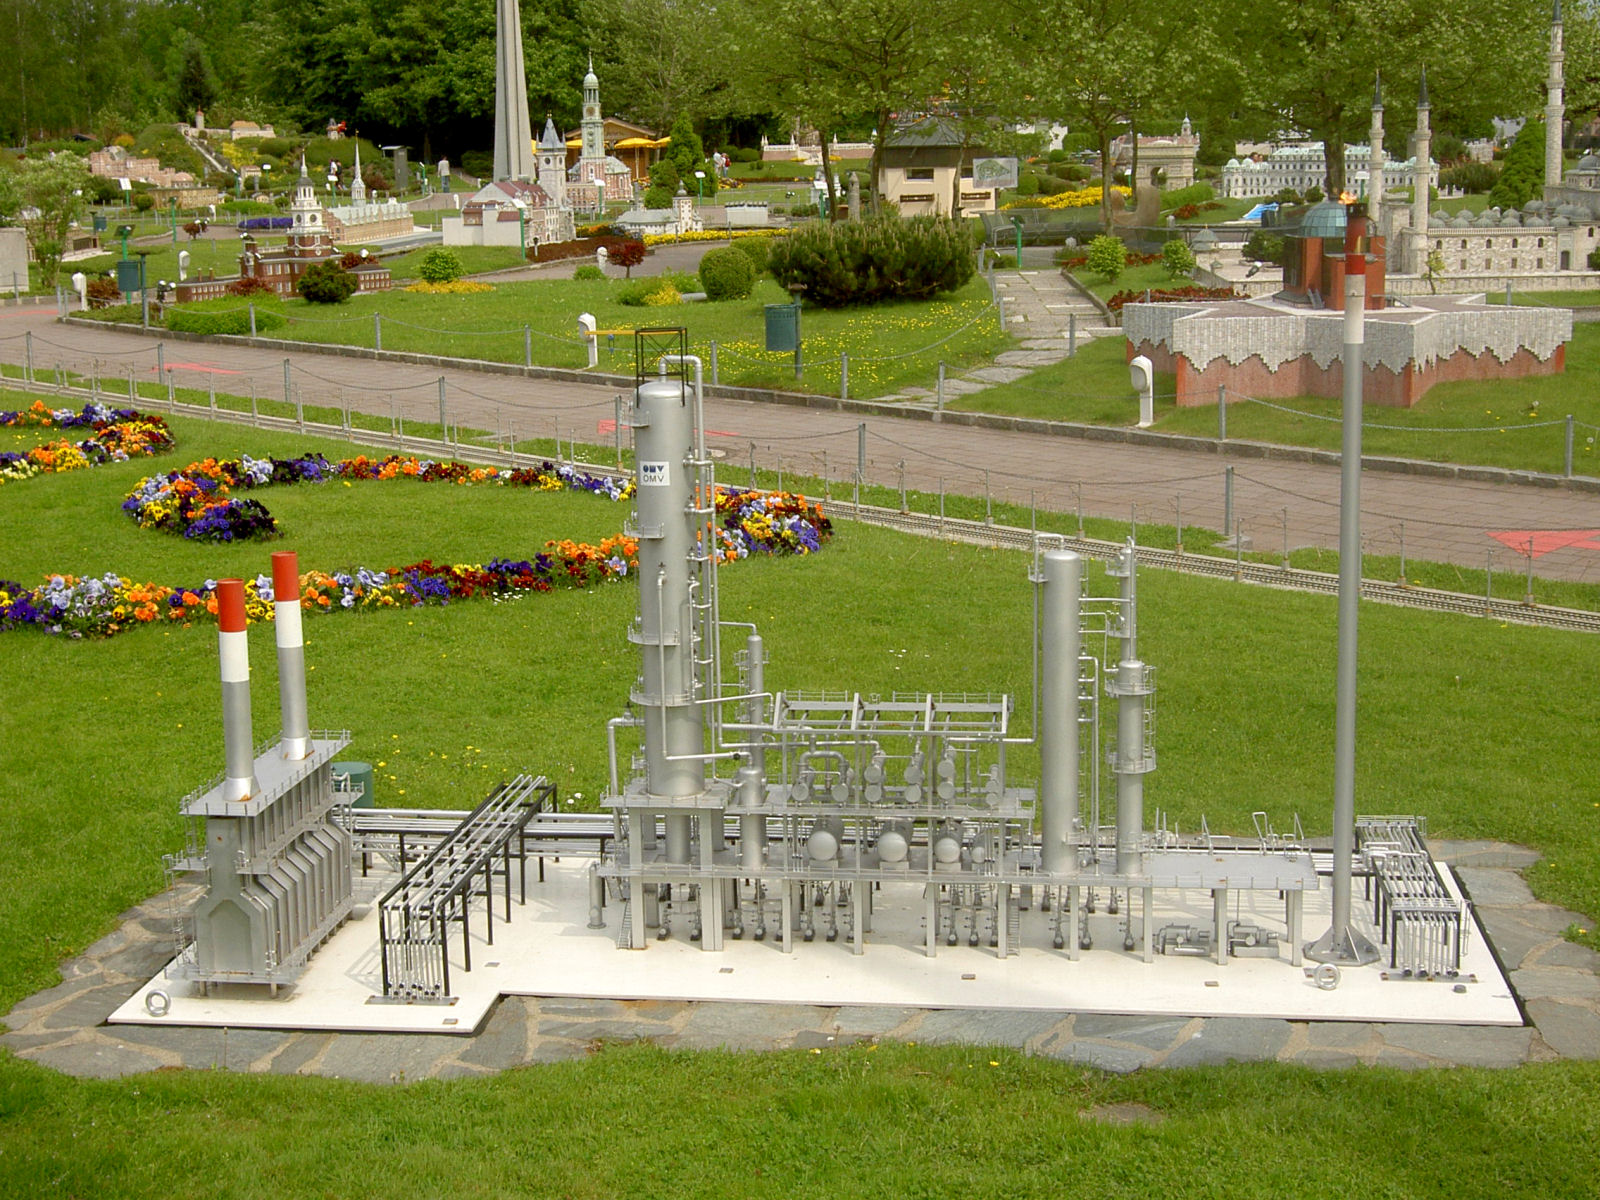 Model of the OMV Raffinerie at Minimundus, Klagenfurt, Austria